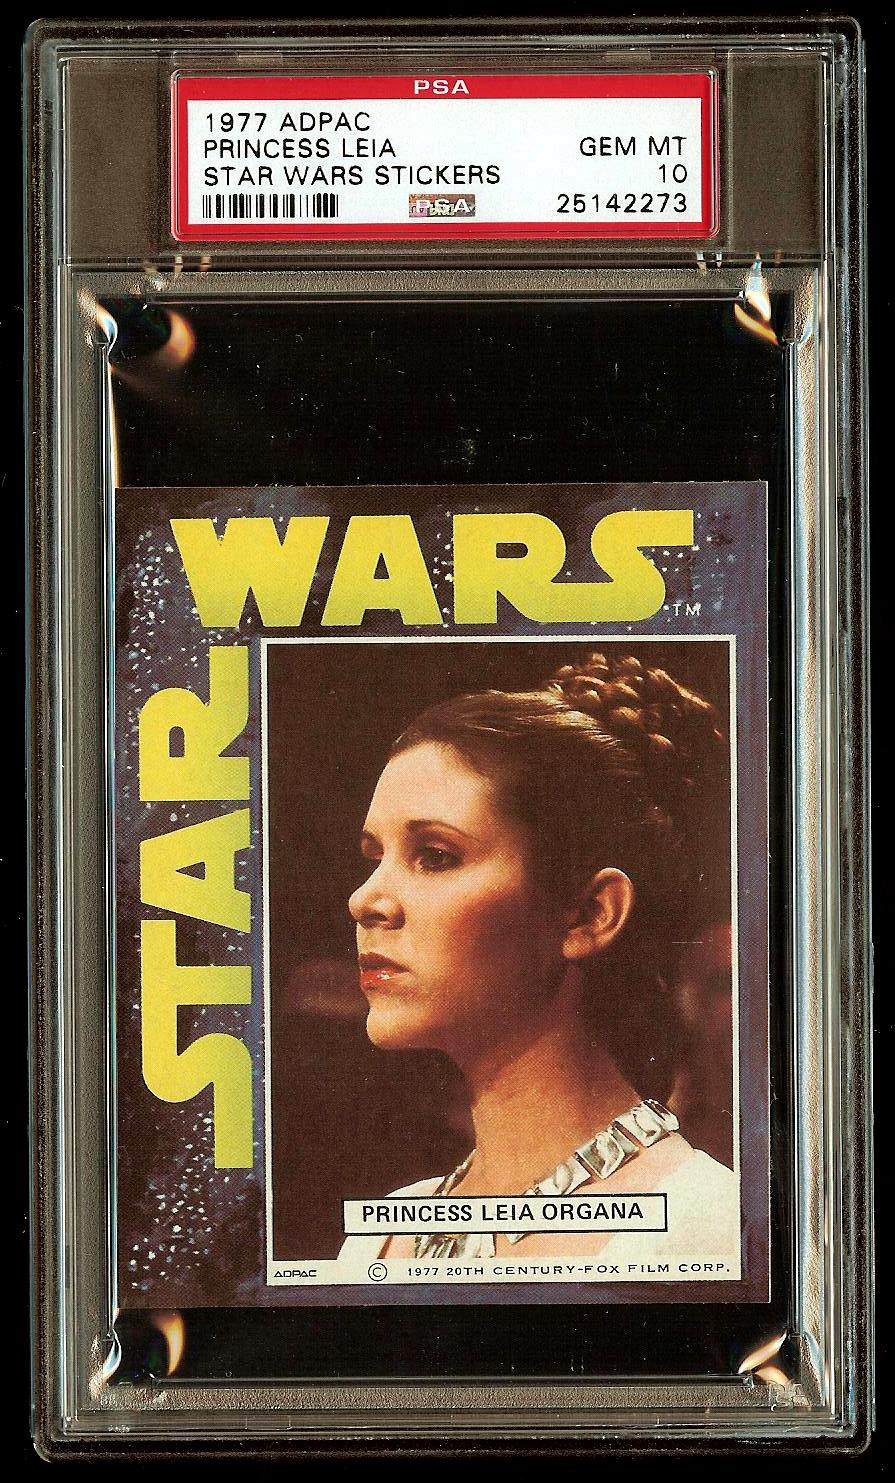 PRINCESS LEIA 1977 Star Wars ADPAC General Mills Cereal Sticker PSA 10 POP 1